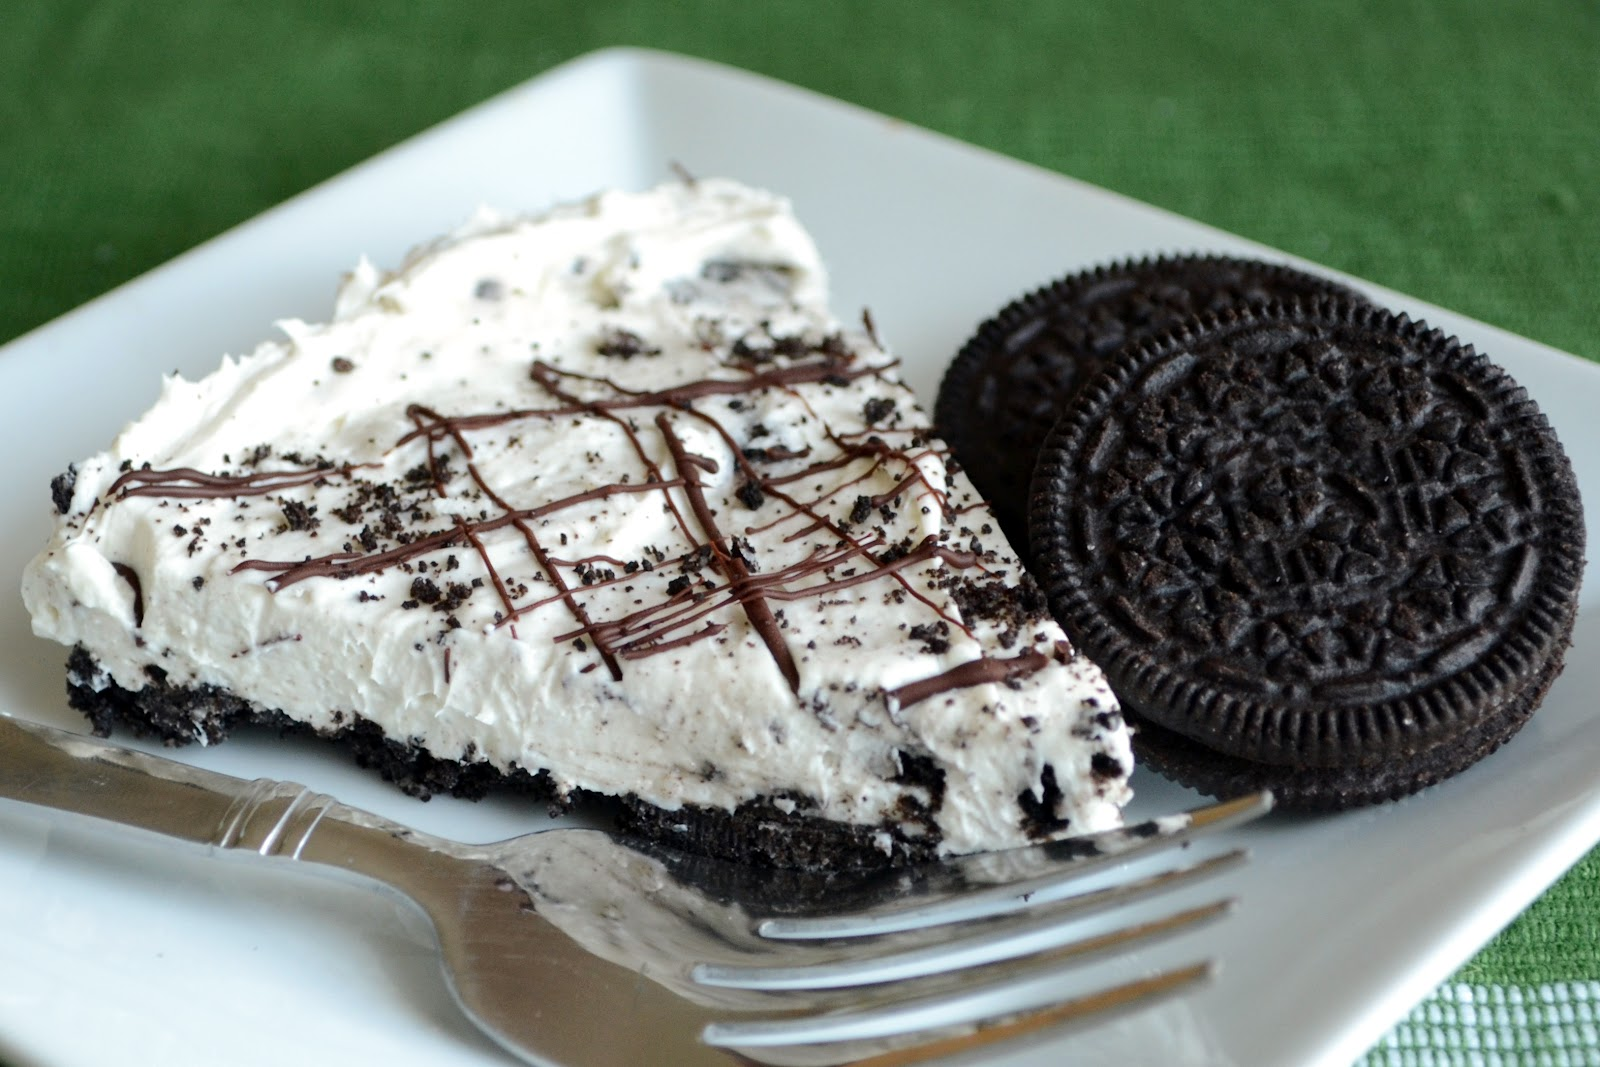 ... Loves Lunch: The Just Because Cookies 'n Cream No-bake Cheesecake